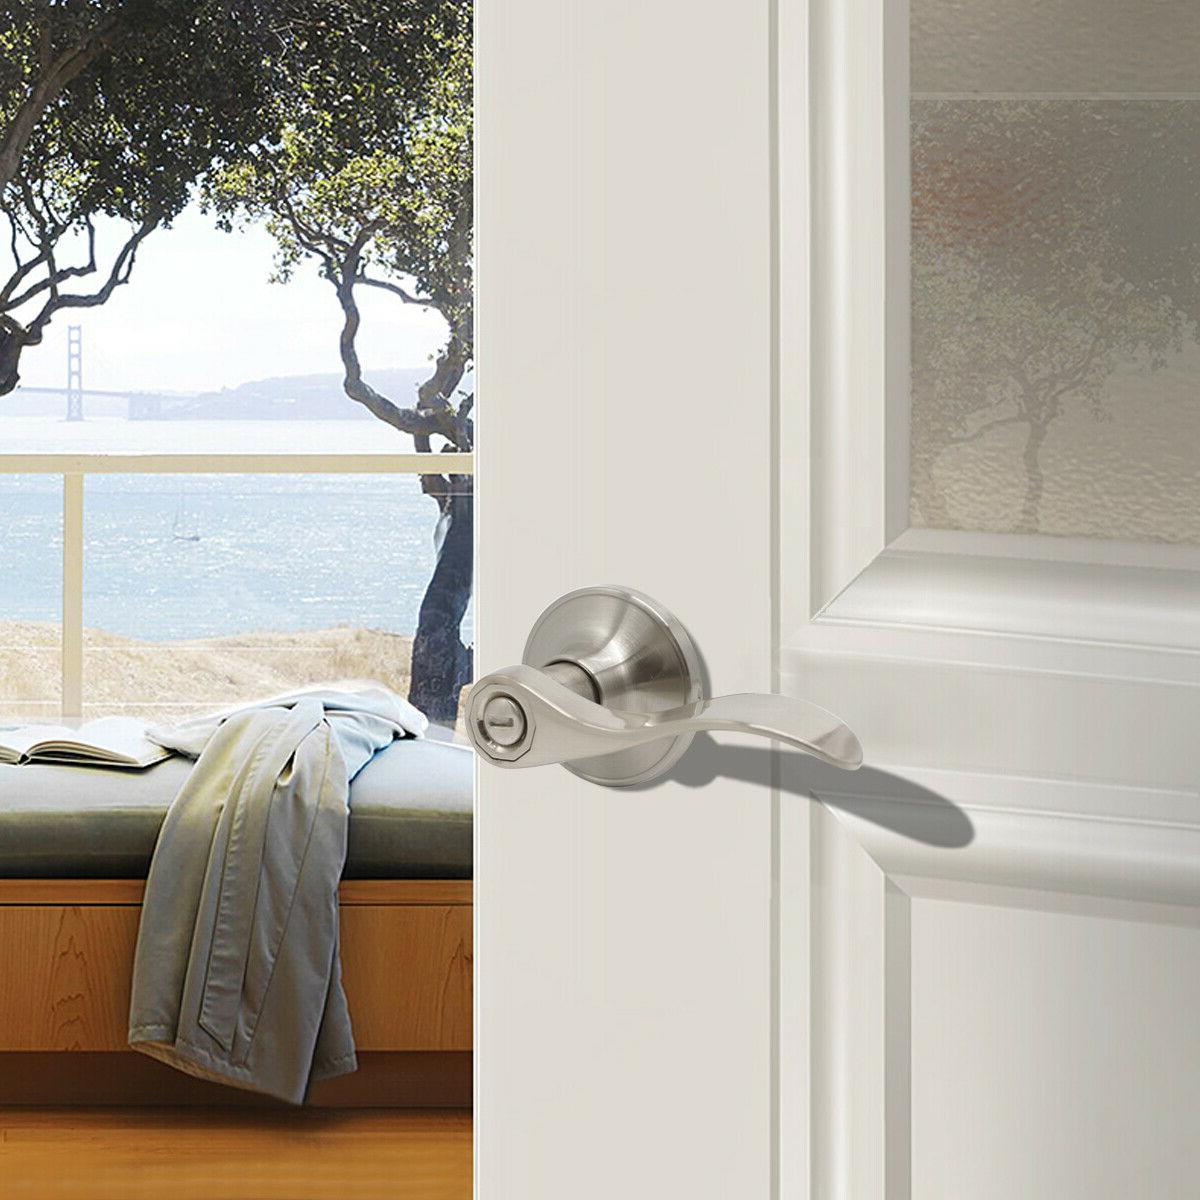 Satin Handle Privacy/Dummy Knobs Lockset